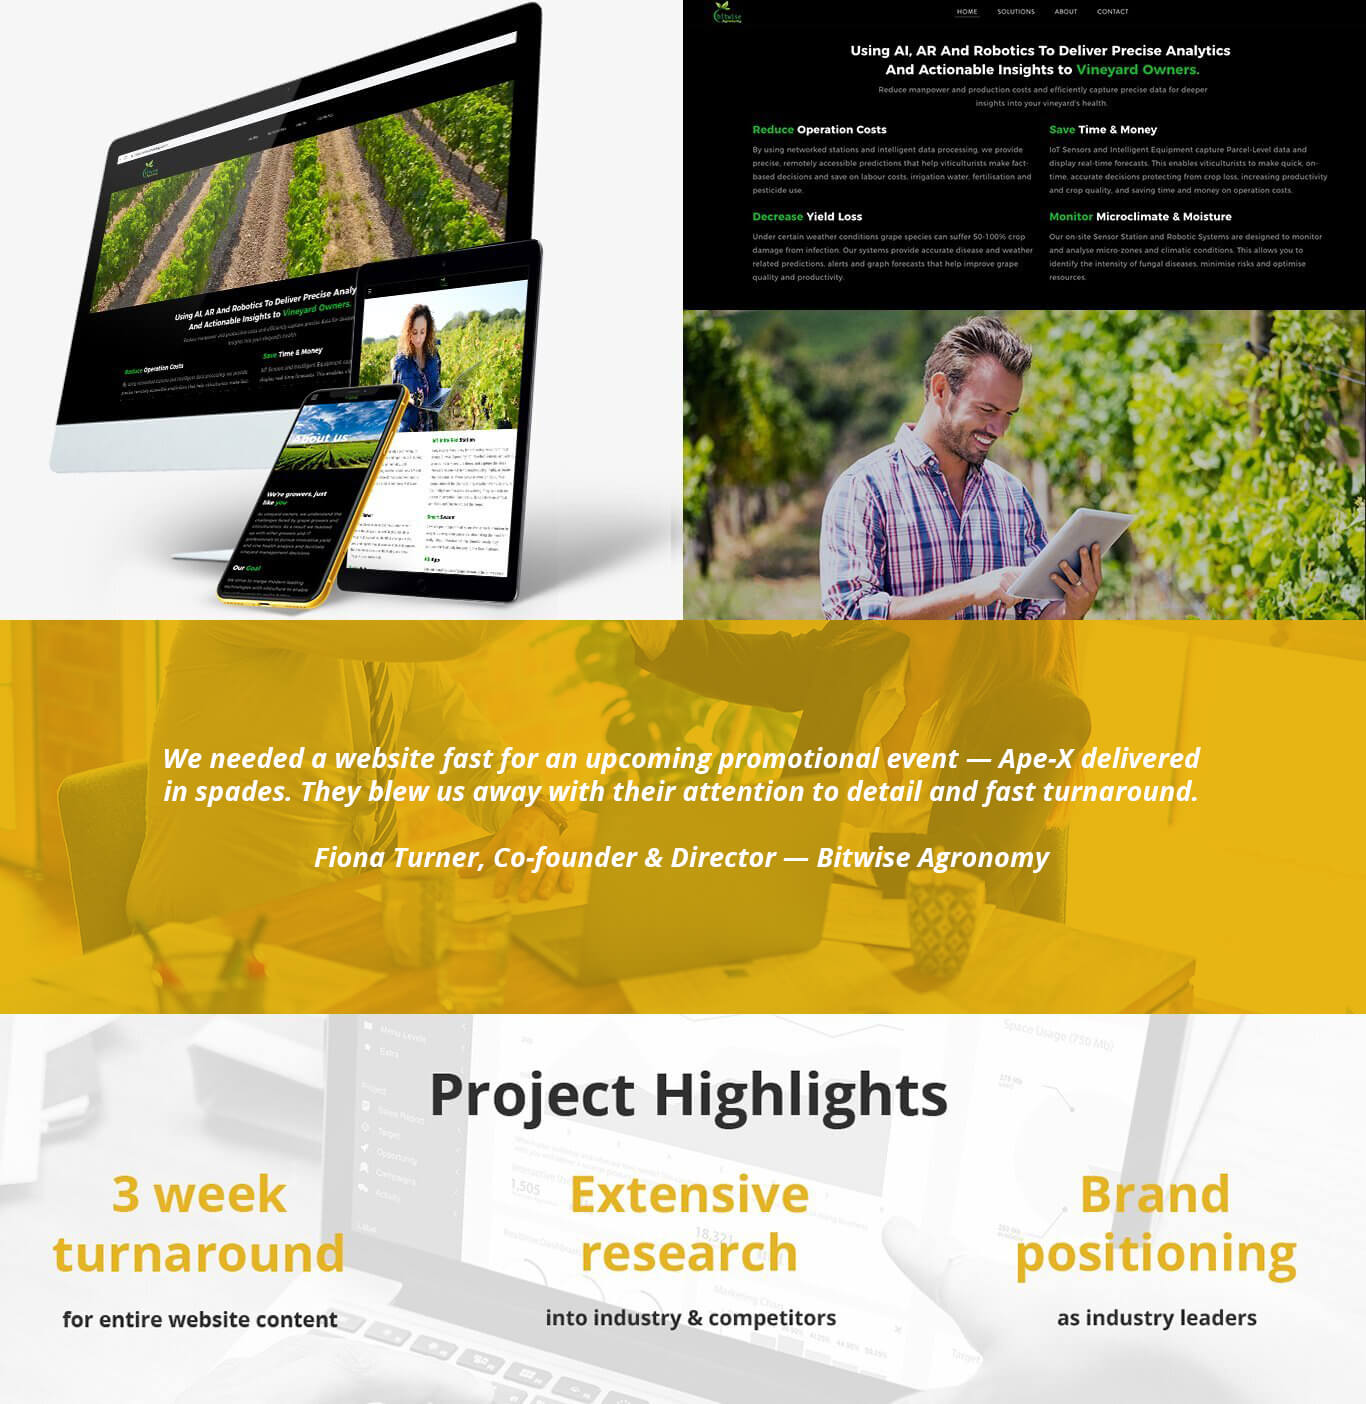 Bitwise Agronomy - Content Writing Services Case Study, Ape-X